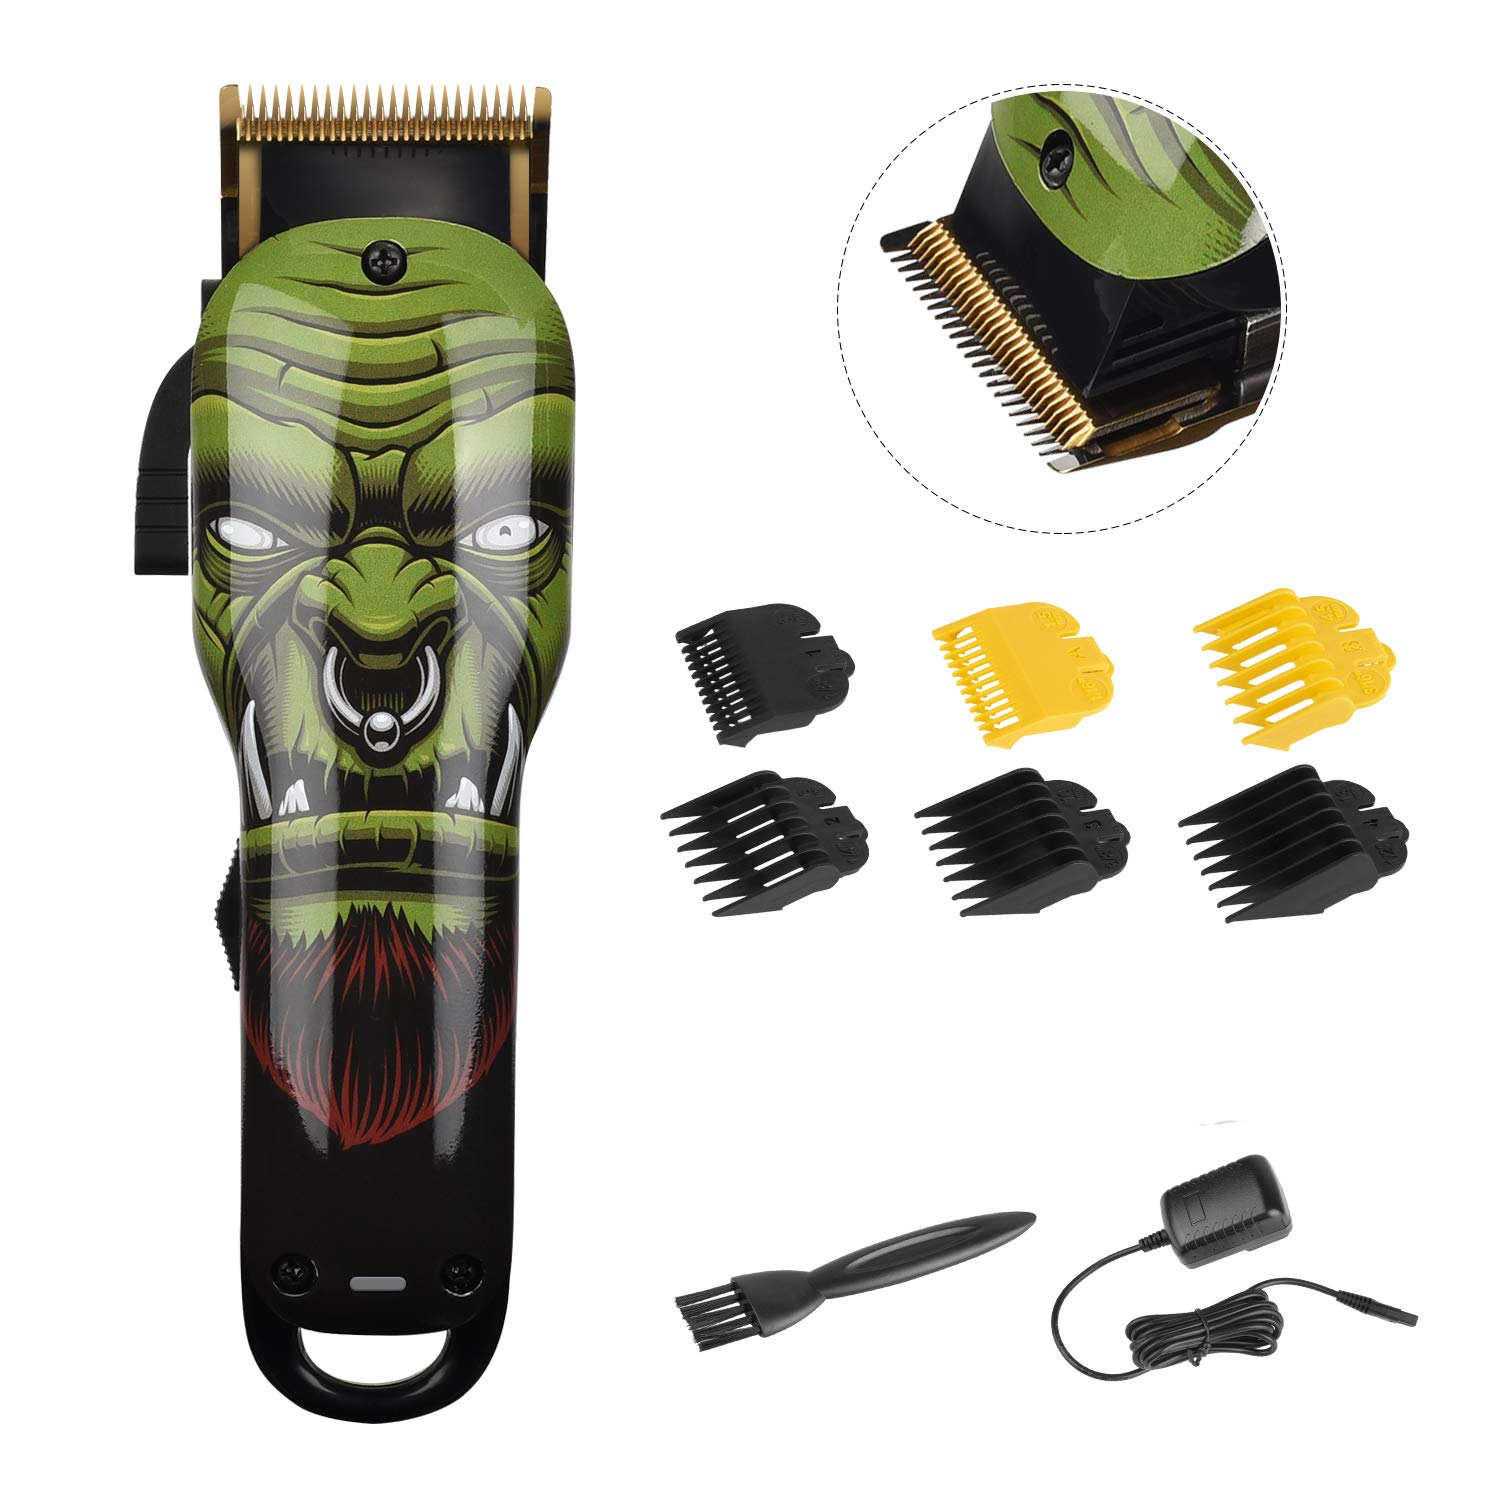 Professional Cordless Rechargeable Hair Clippers for Men Built-in 2000mAh Lithium Ion Professional Barber Supplies Hair Trimmer Hair Cutting Machine (hair trimmer)